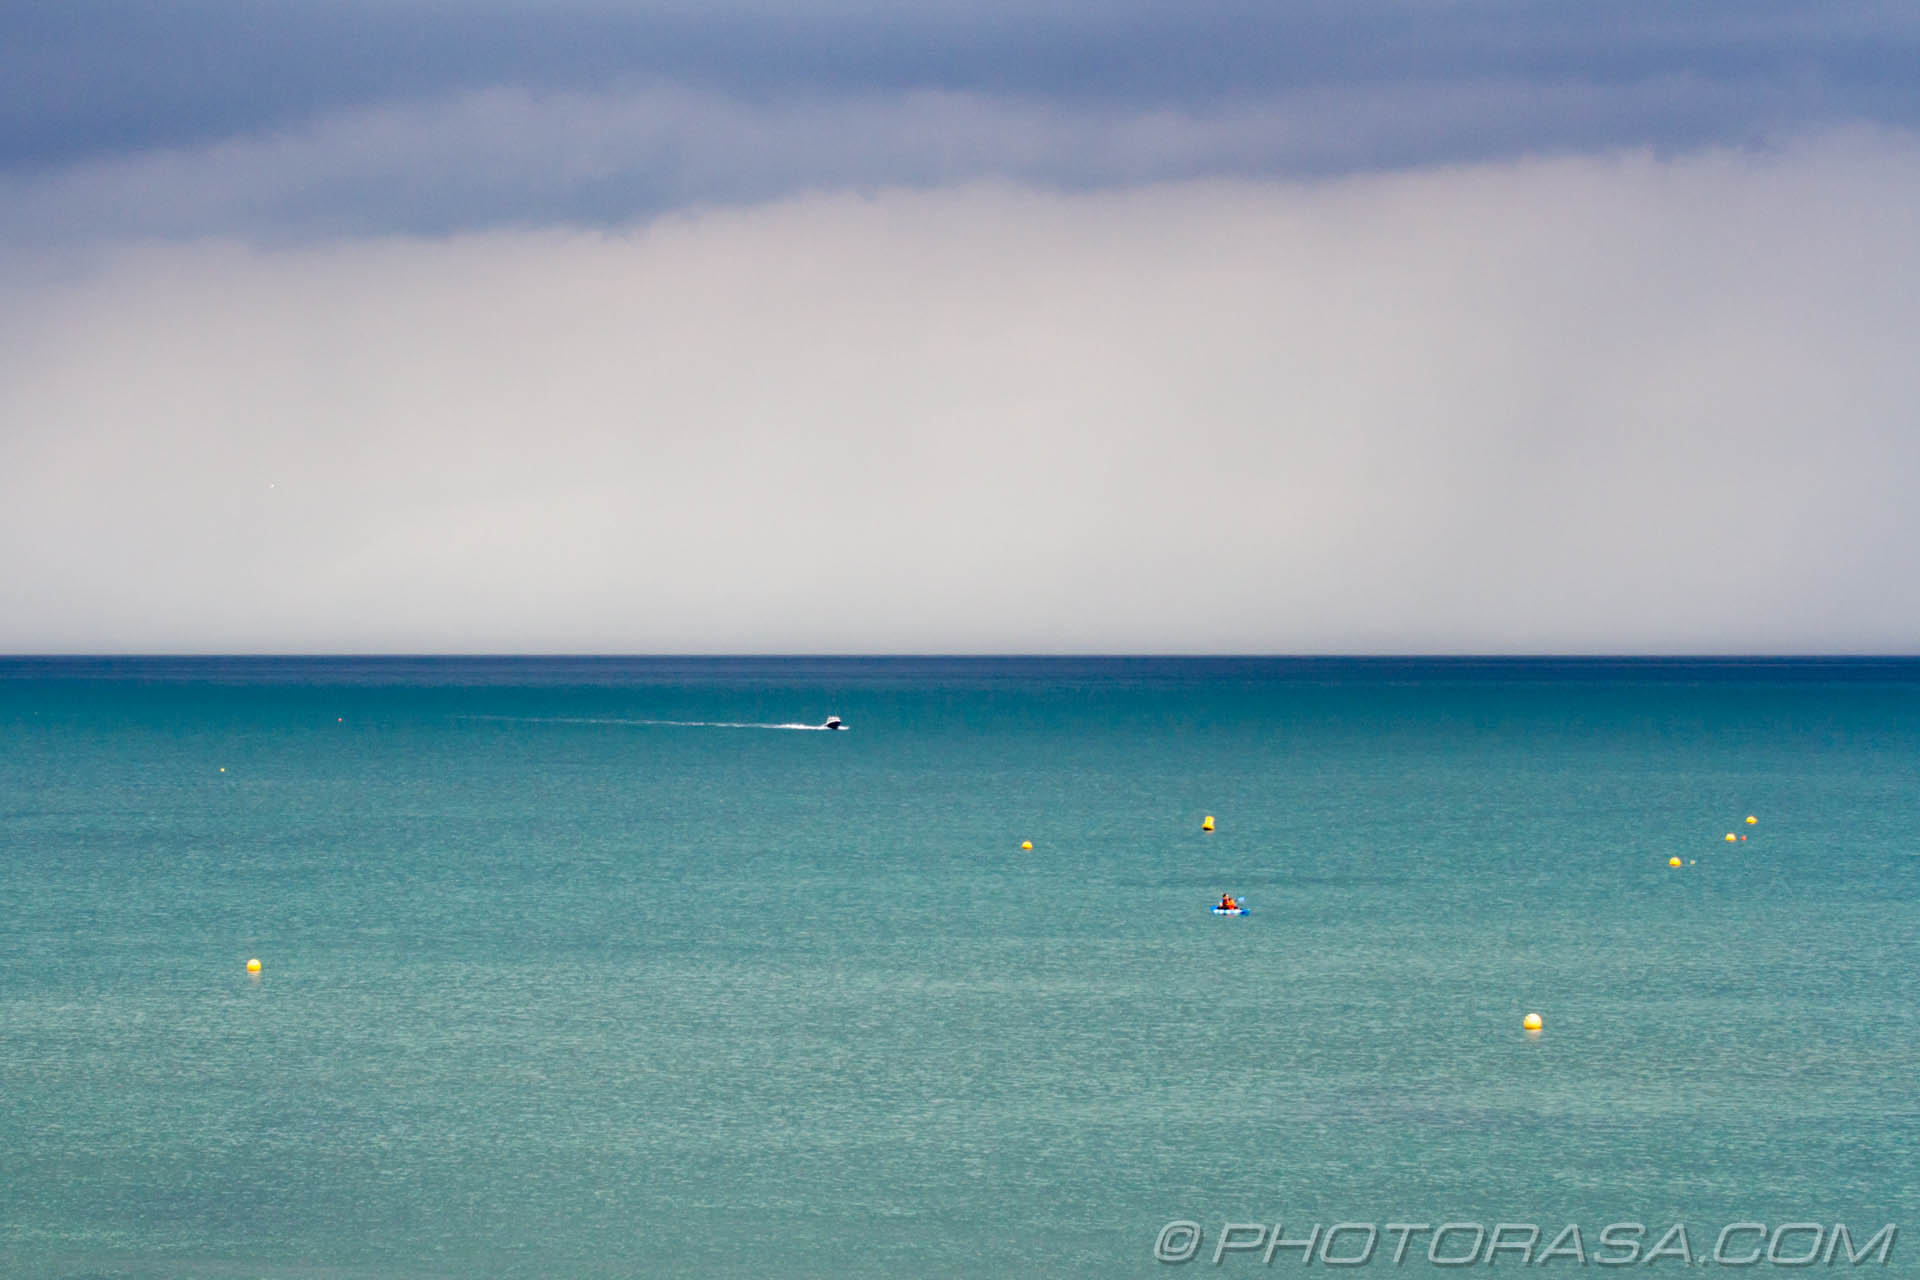 http://photorasa.com/sea-lyme-regis/buoys-and-boats-on-stormy-blue-sea/